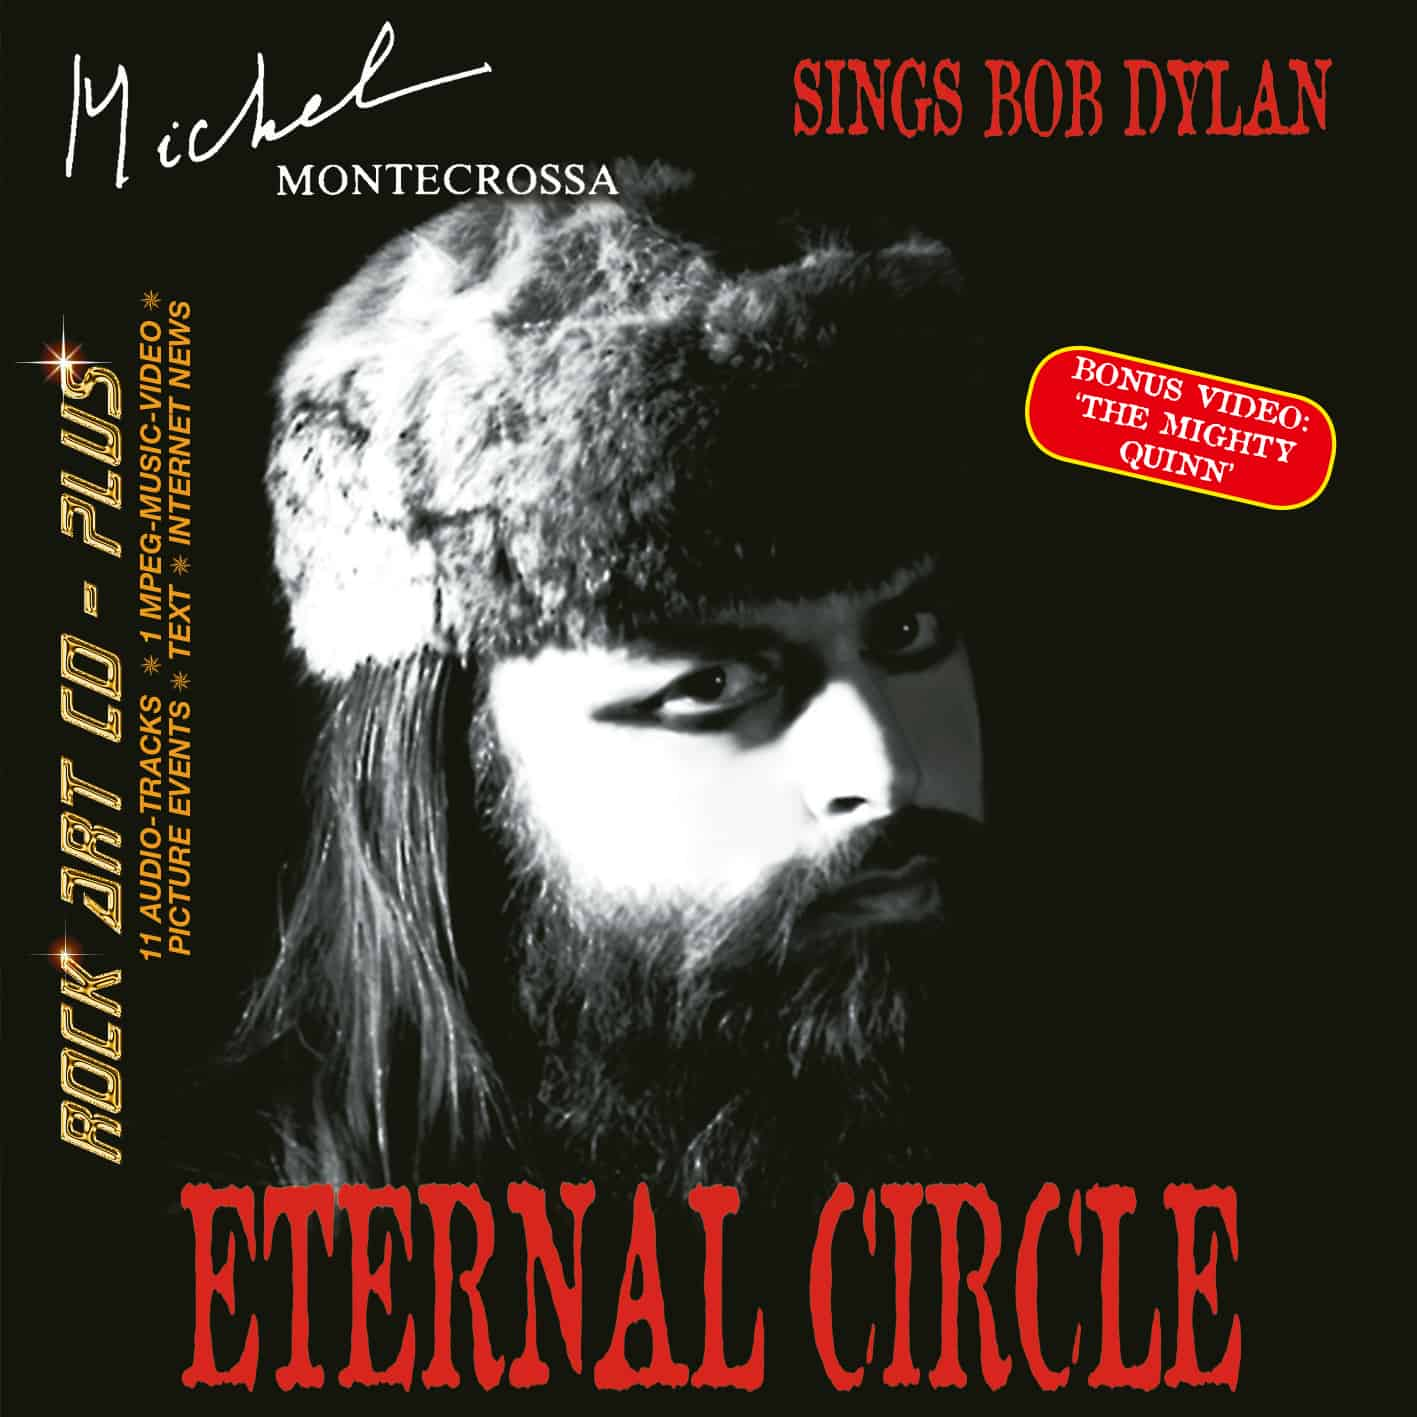 Eternal Circle - Michel Montecrossa sings Bob Dylan